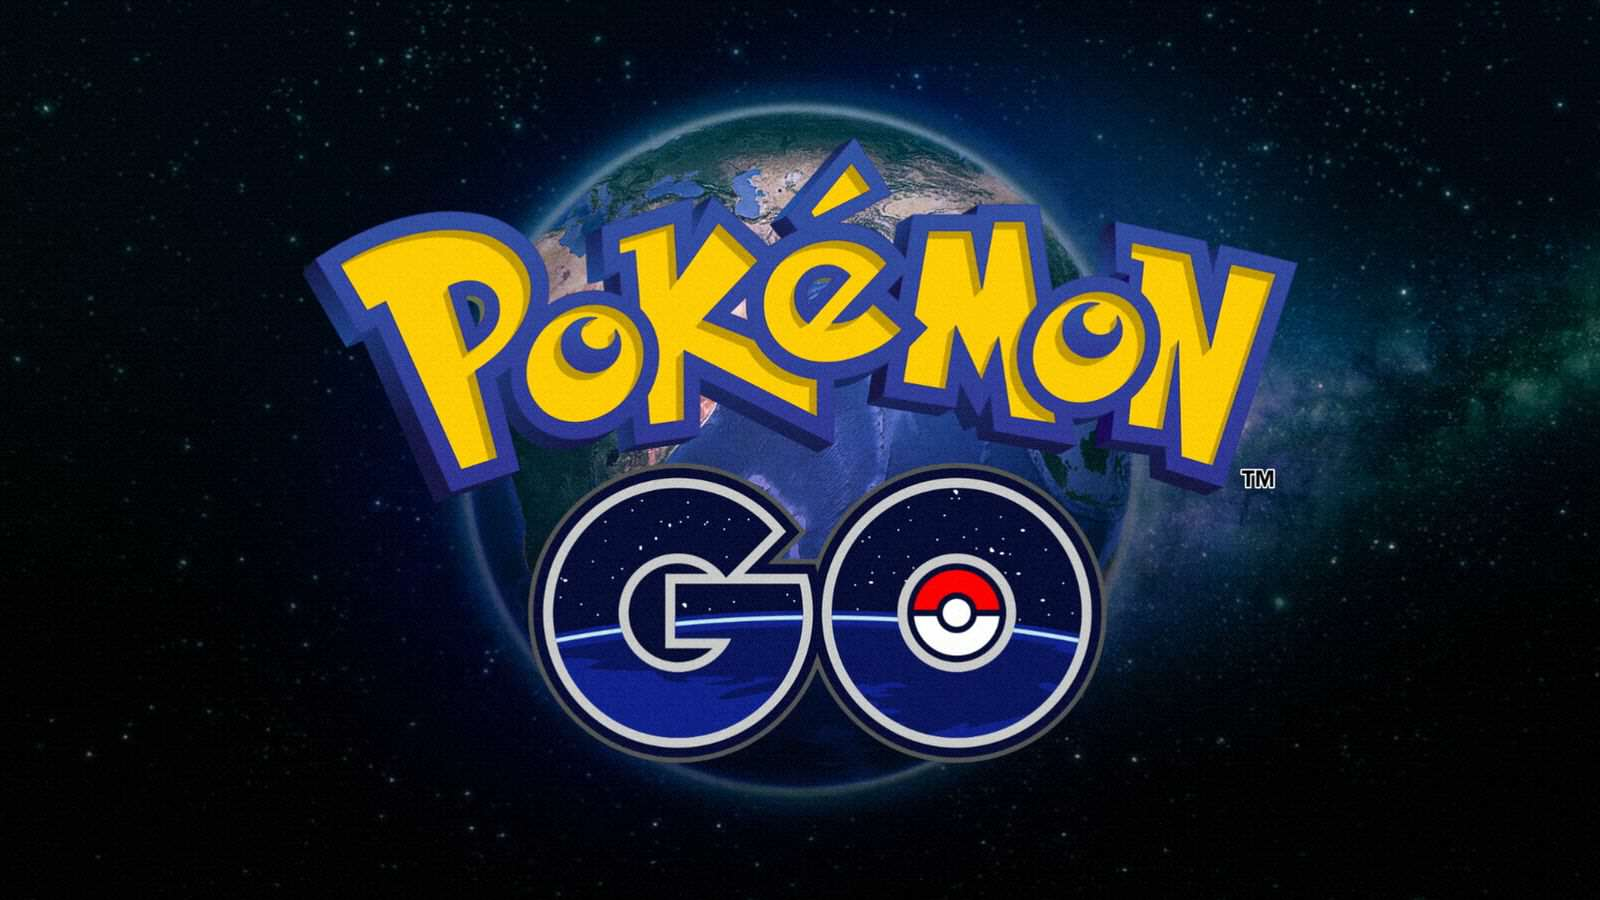 Pokemon Go Devs Working To Bring Back Key Feature With Big Changes